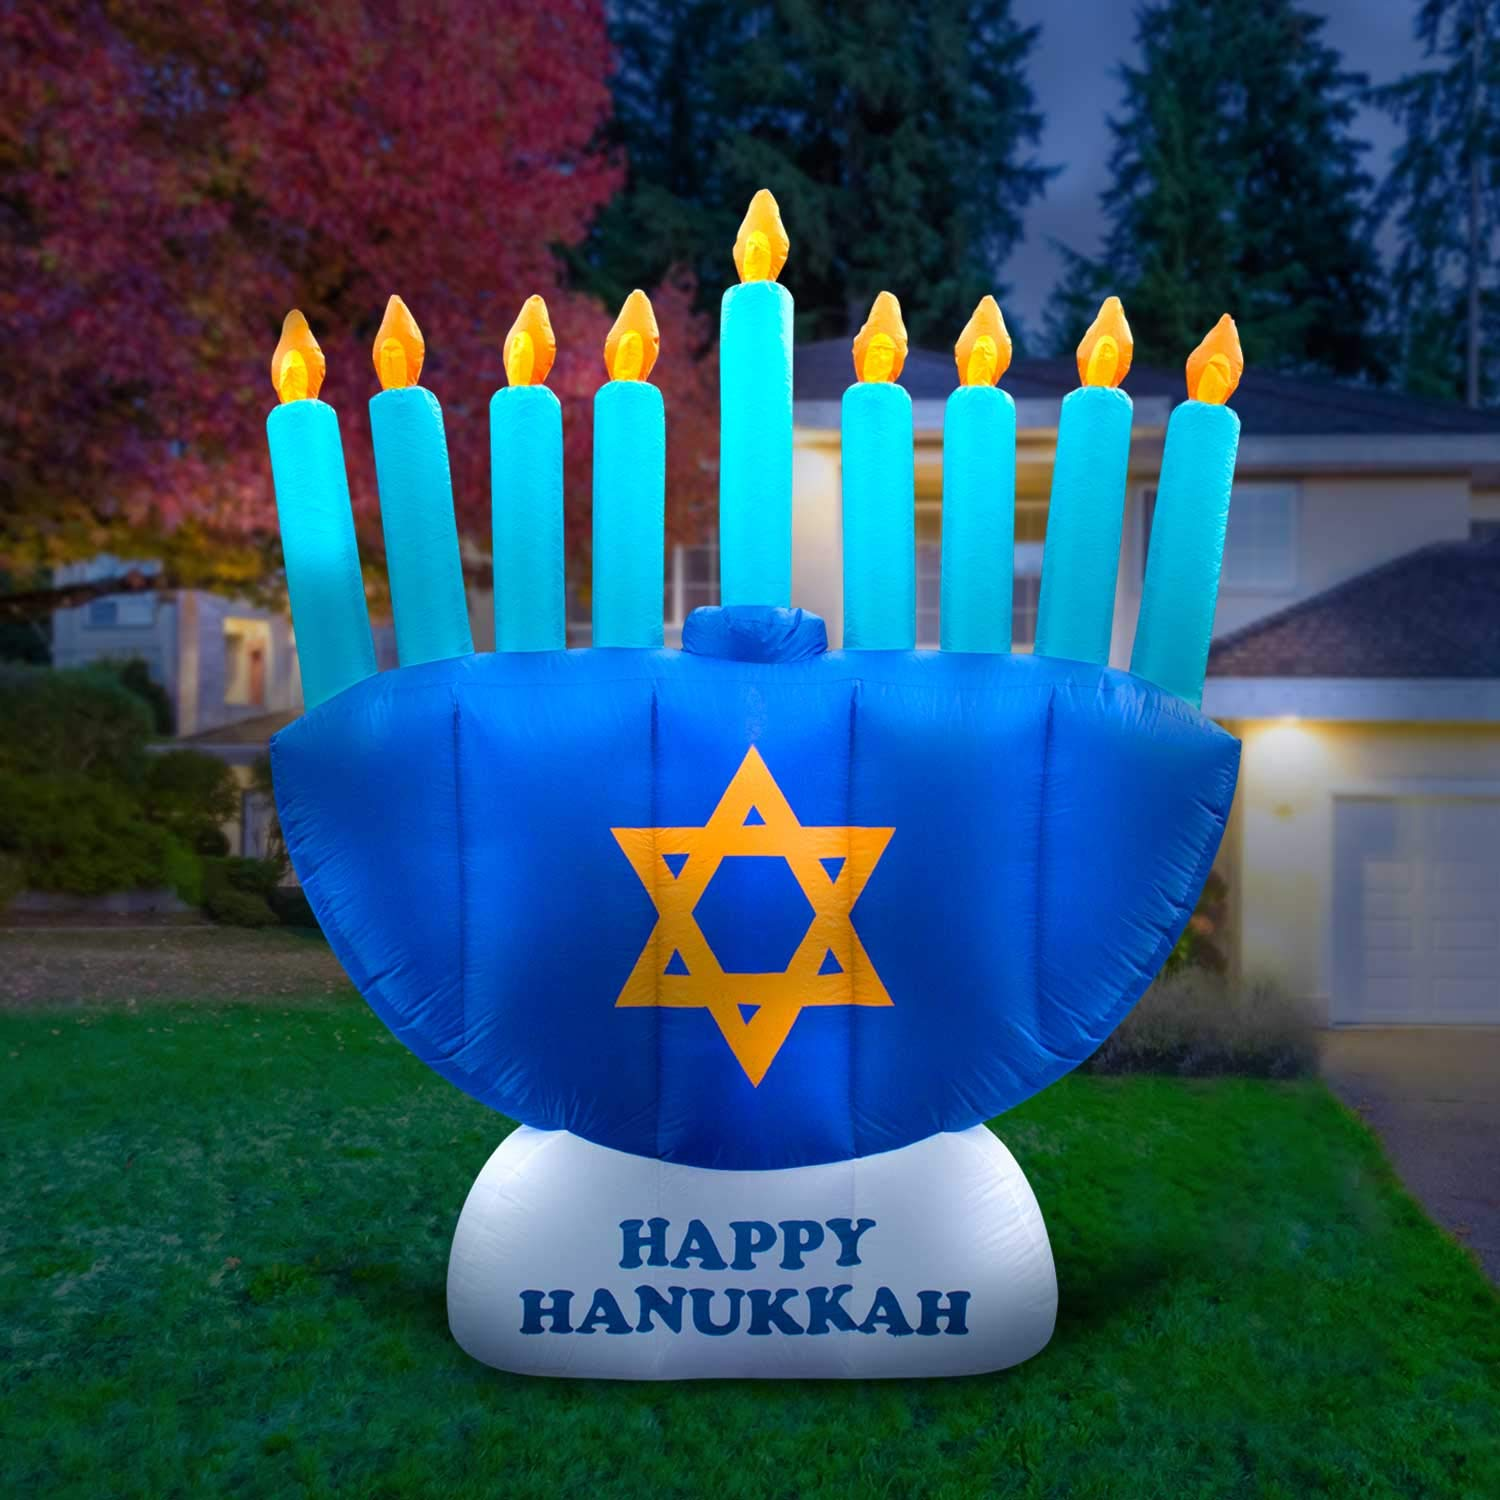 Holidayana 8ft Giant Inflatable Menorah Hanukkah Decoration | with Built-in Bulbs, Tie-Down Points, and Powerful Built in Fan